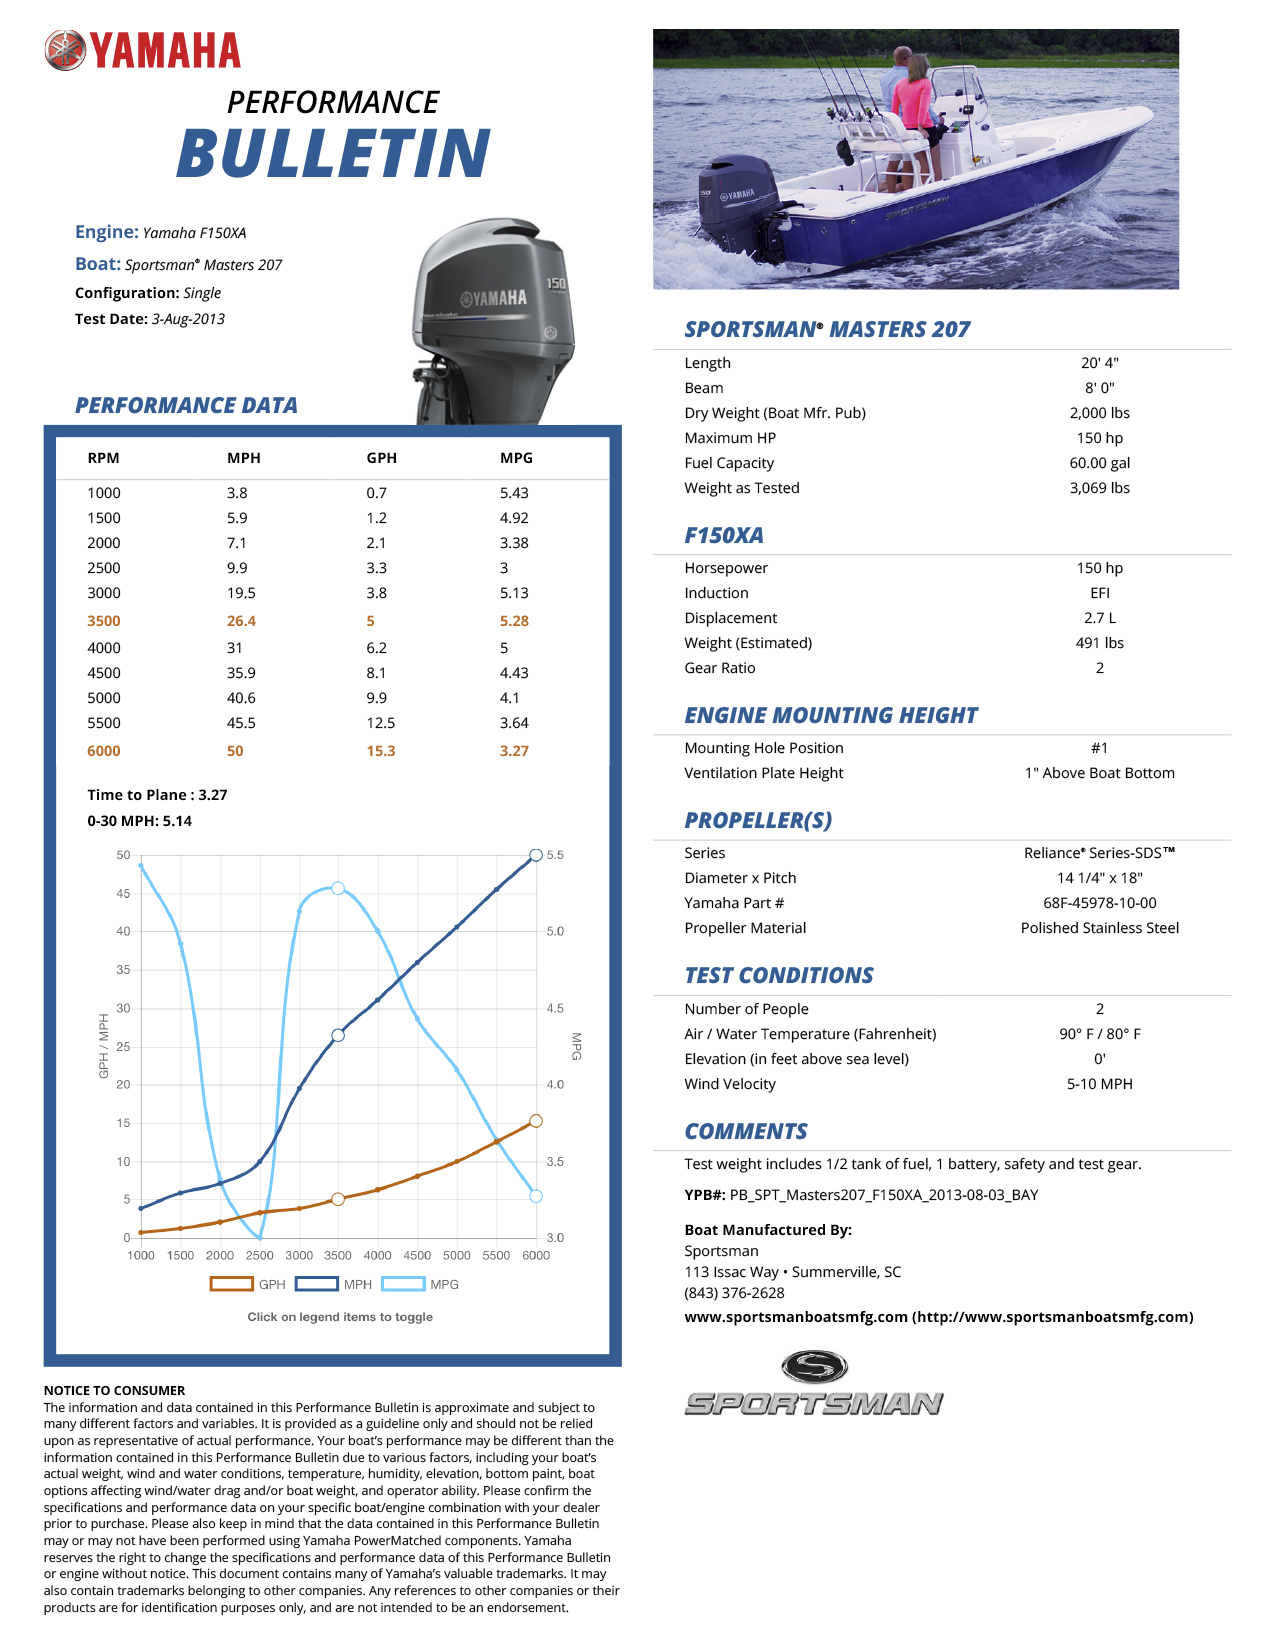 Performance bulletin for 207-bay-boat